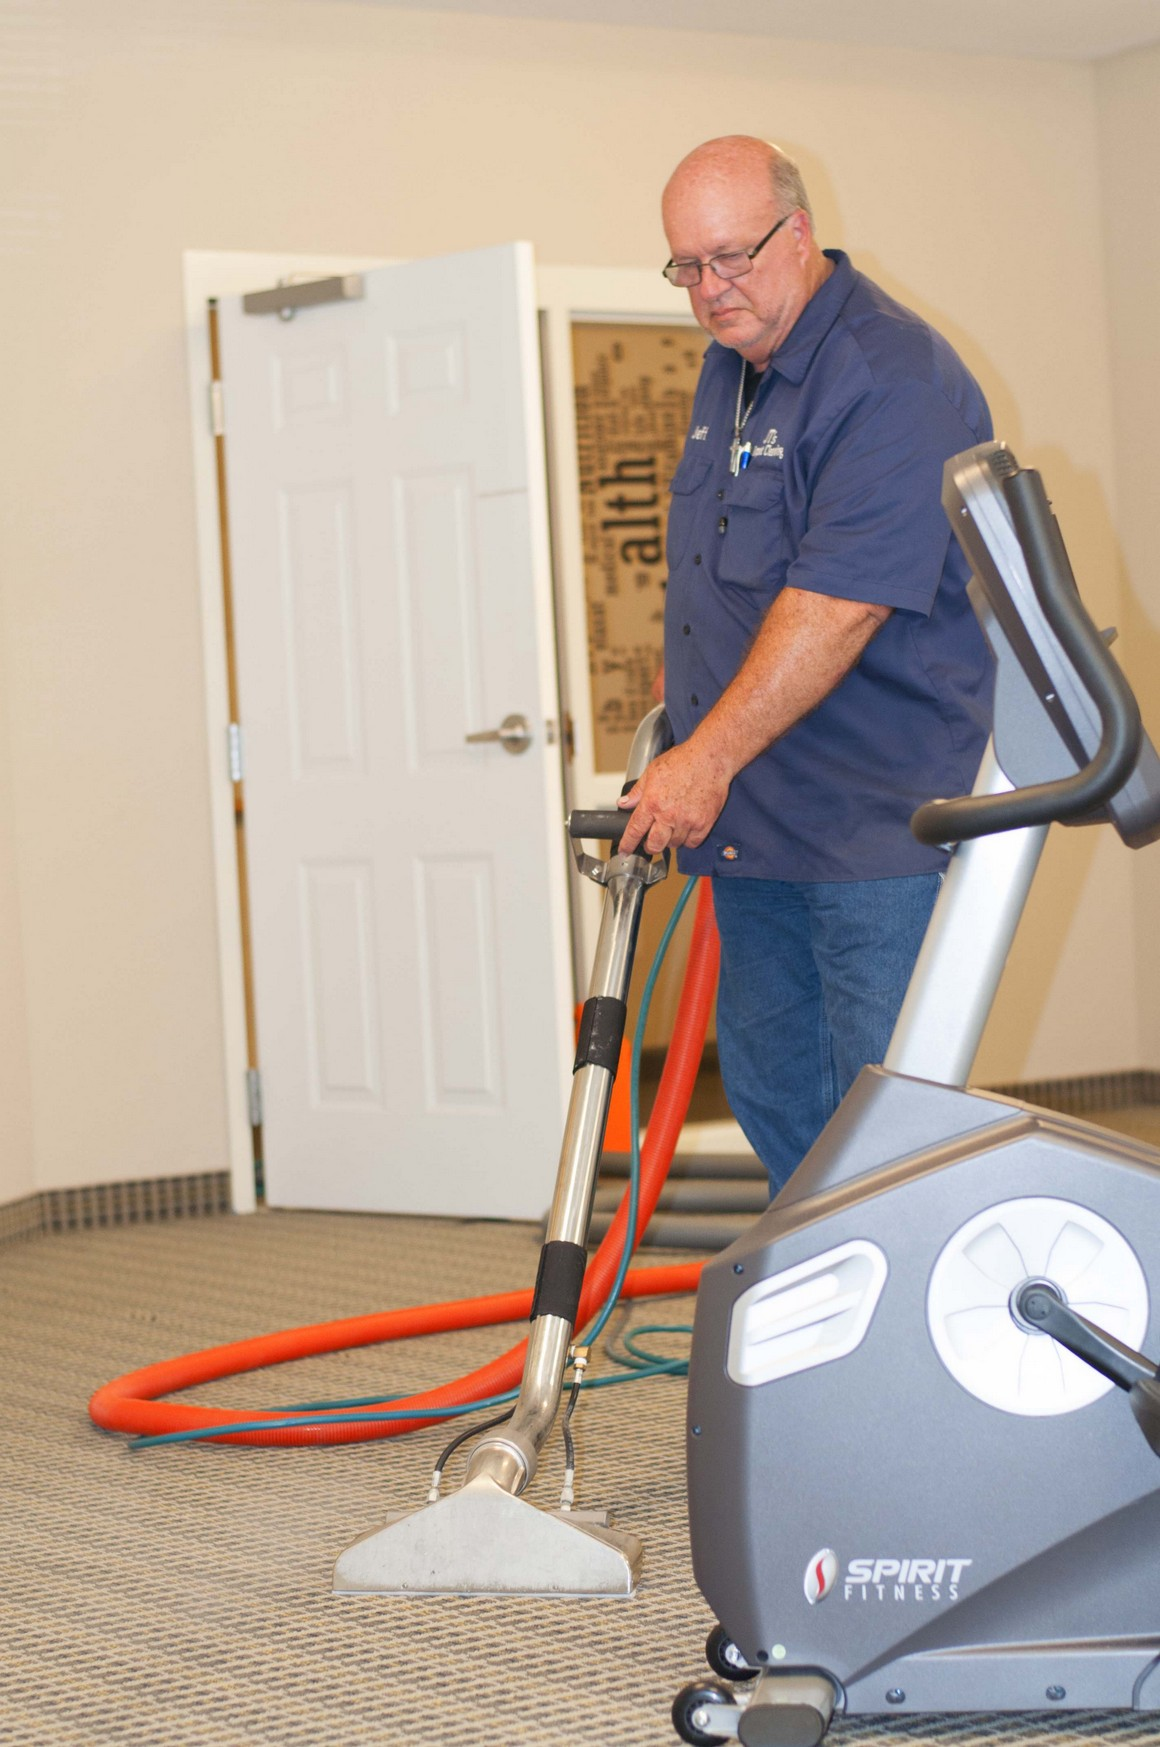 Jeff Fitness Room Cleaning